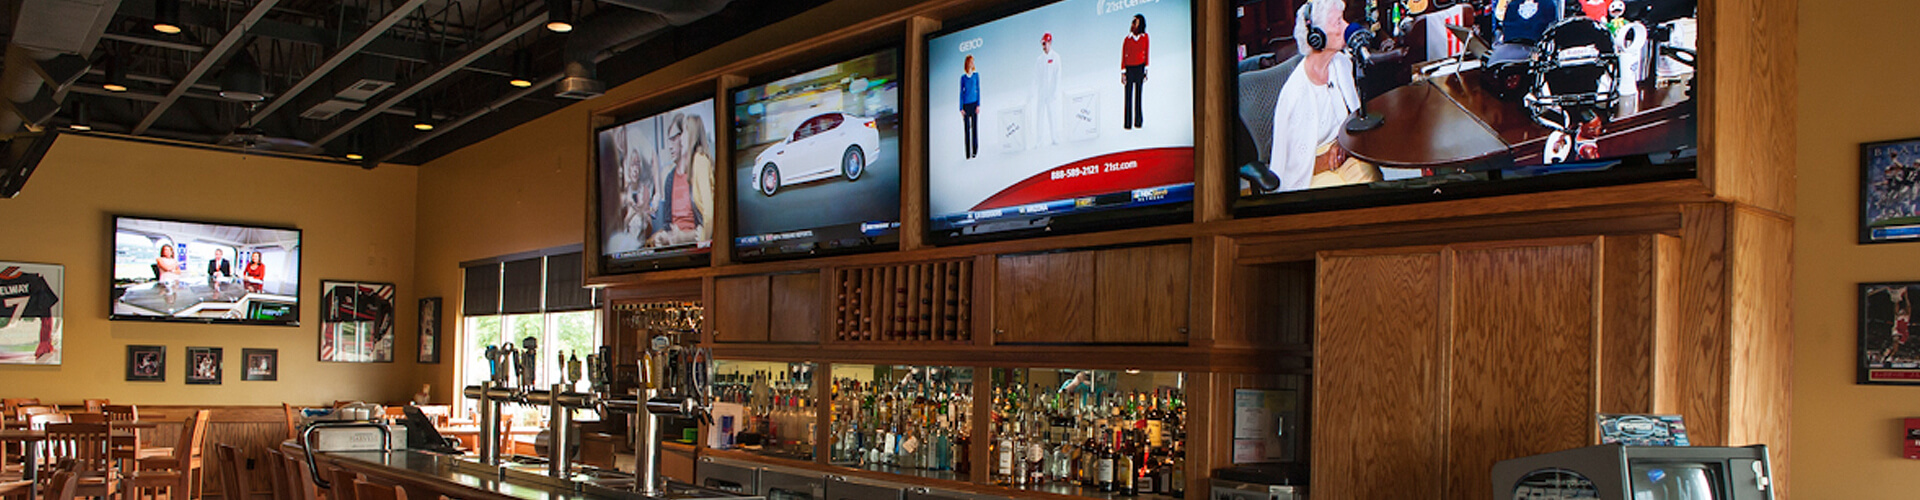 /images/pages/featured/usa-bostonpizza_casestudy_homepagebanner_1920x500px._background.jpg